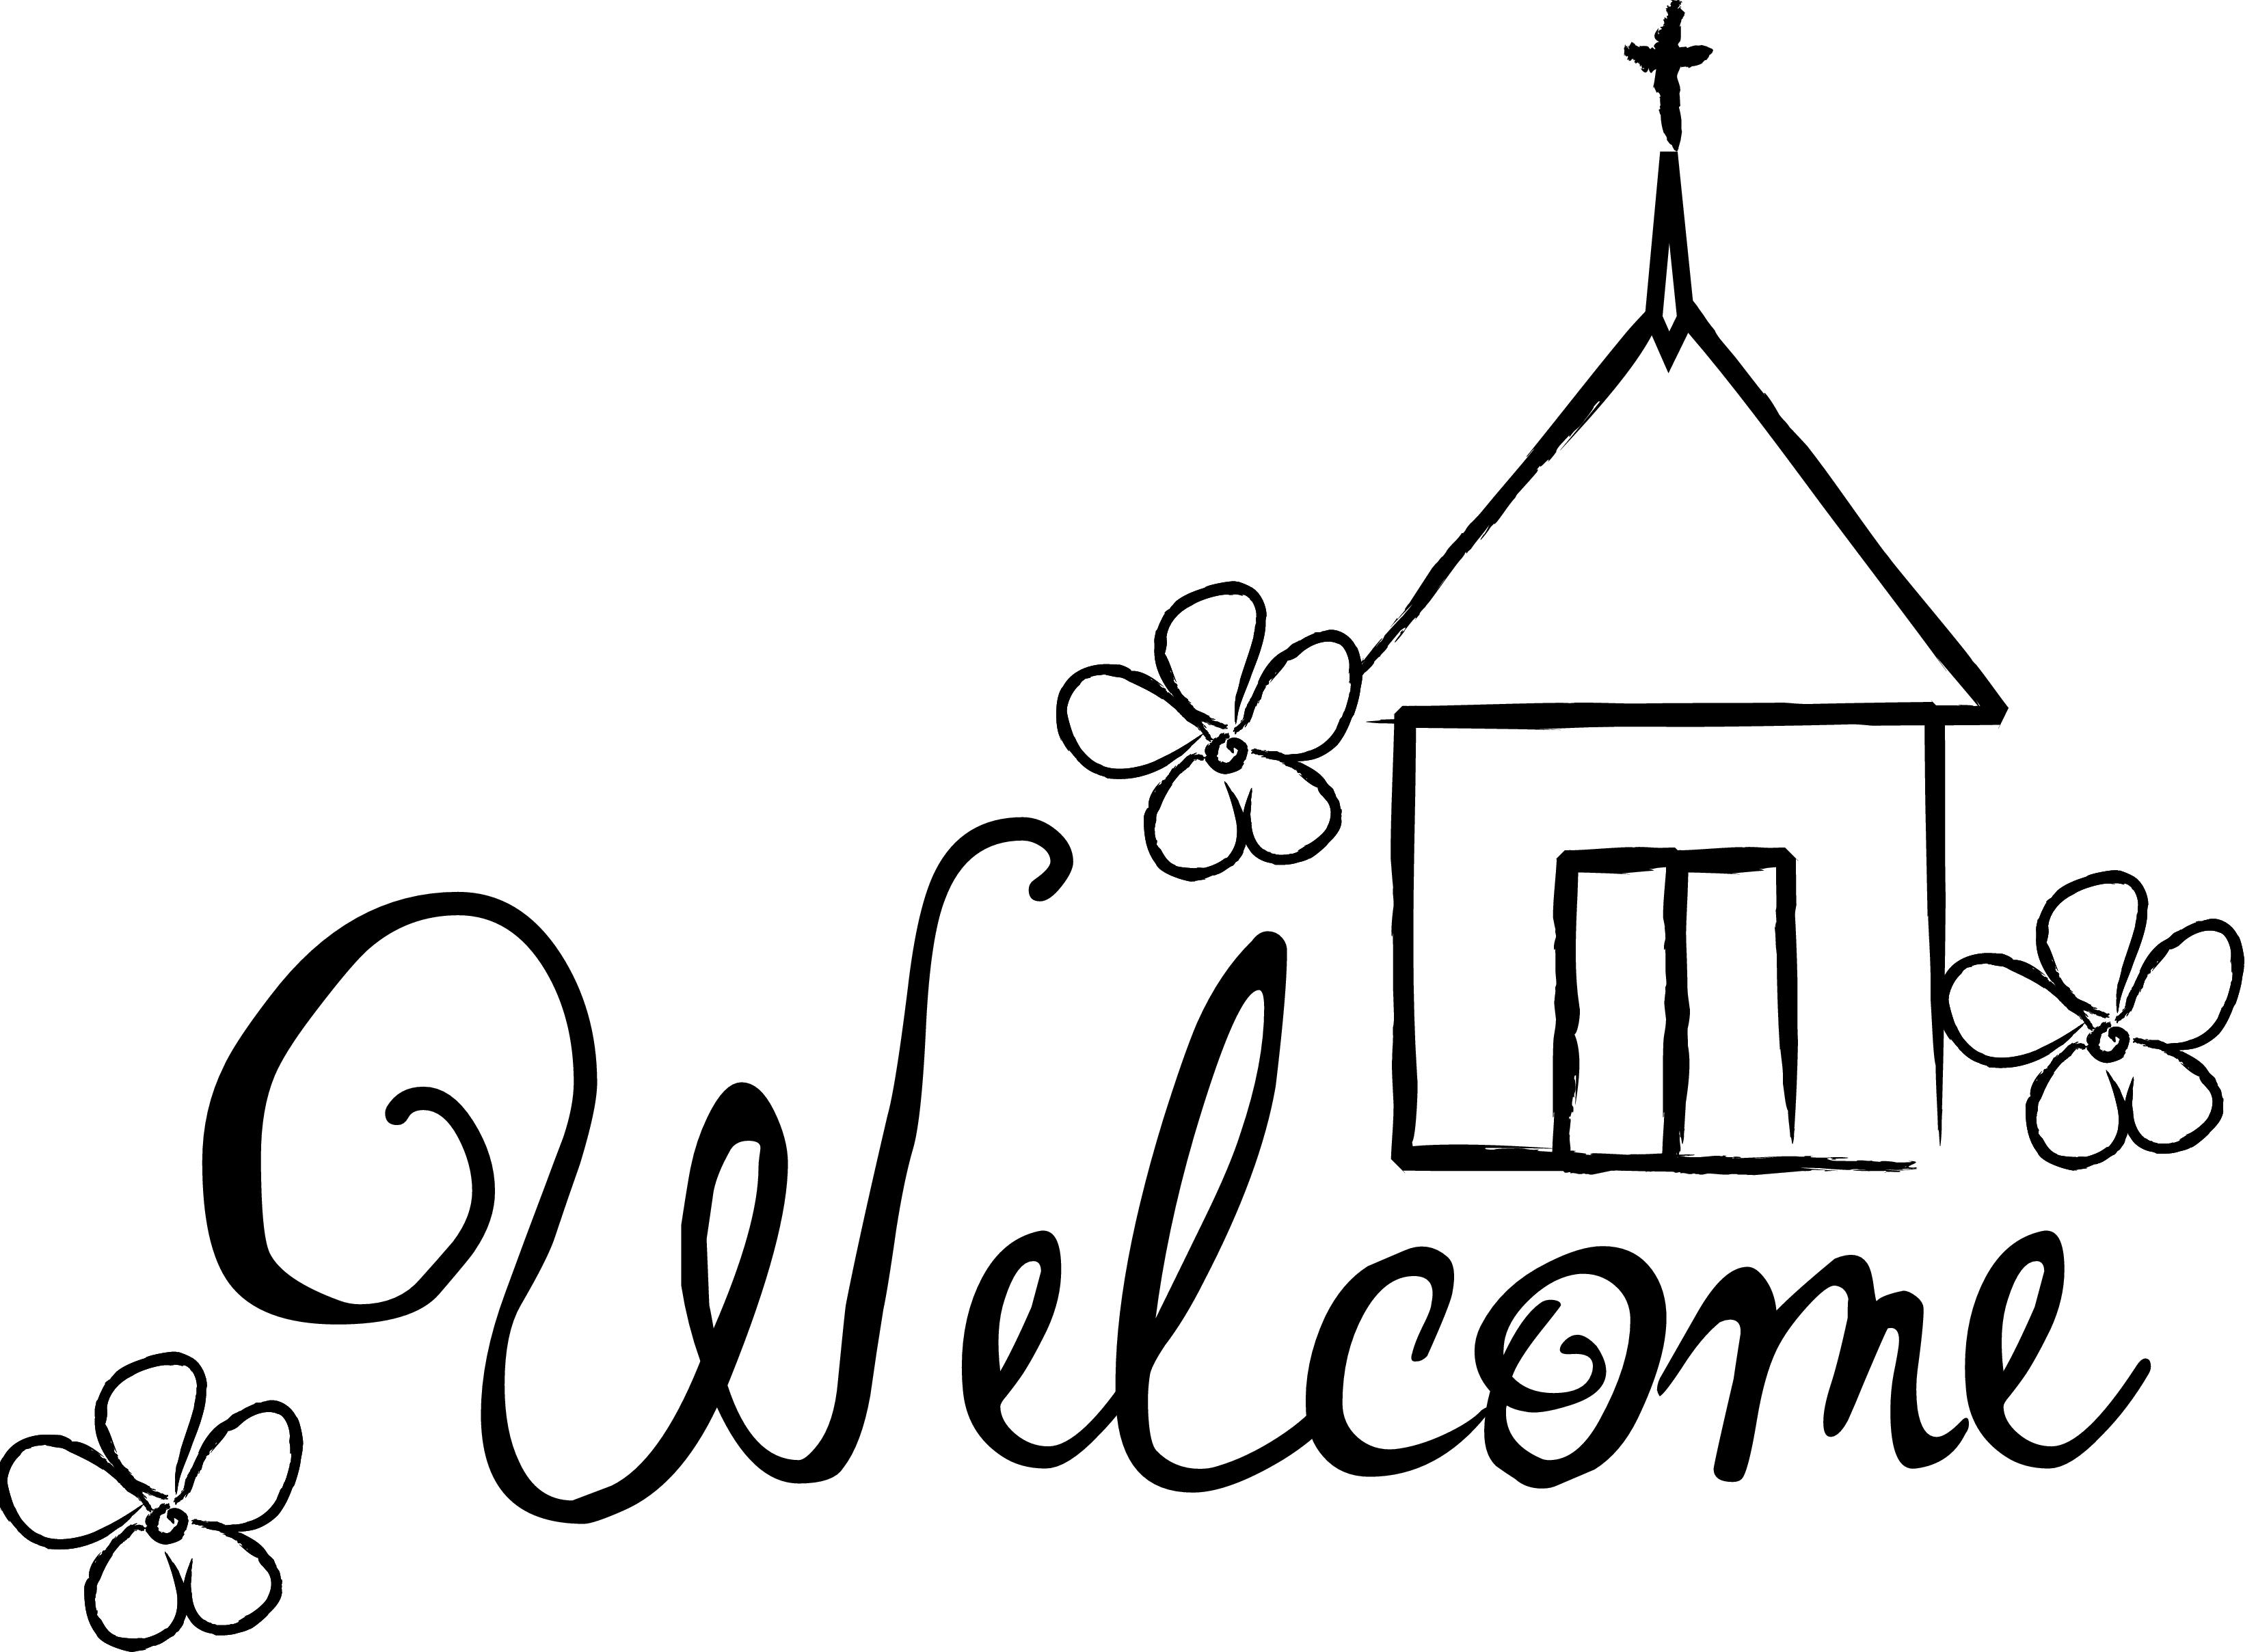 Welcome church visitors clipart svg transparent download Free Church Welcome Cliparts, Download Free Clip Art, Free ... svg transparent download